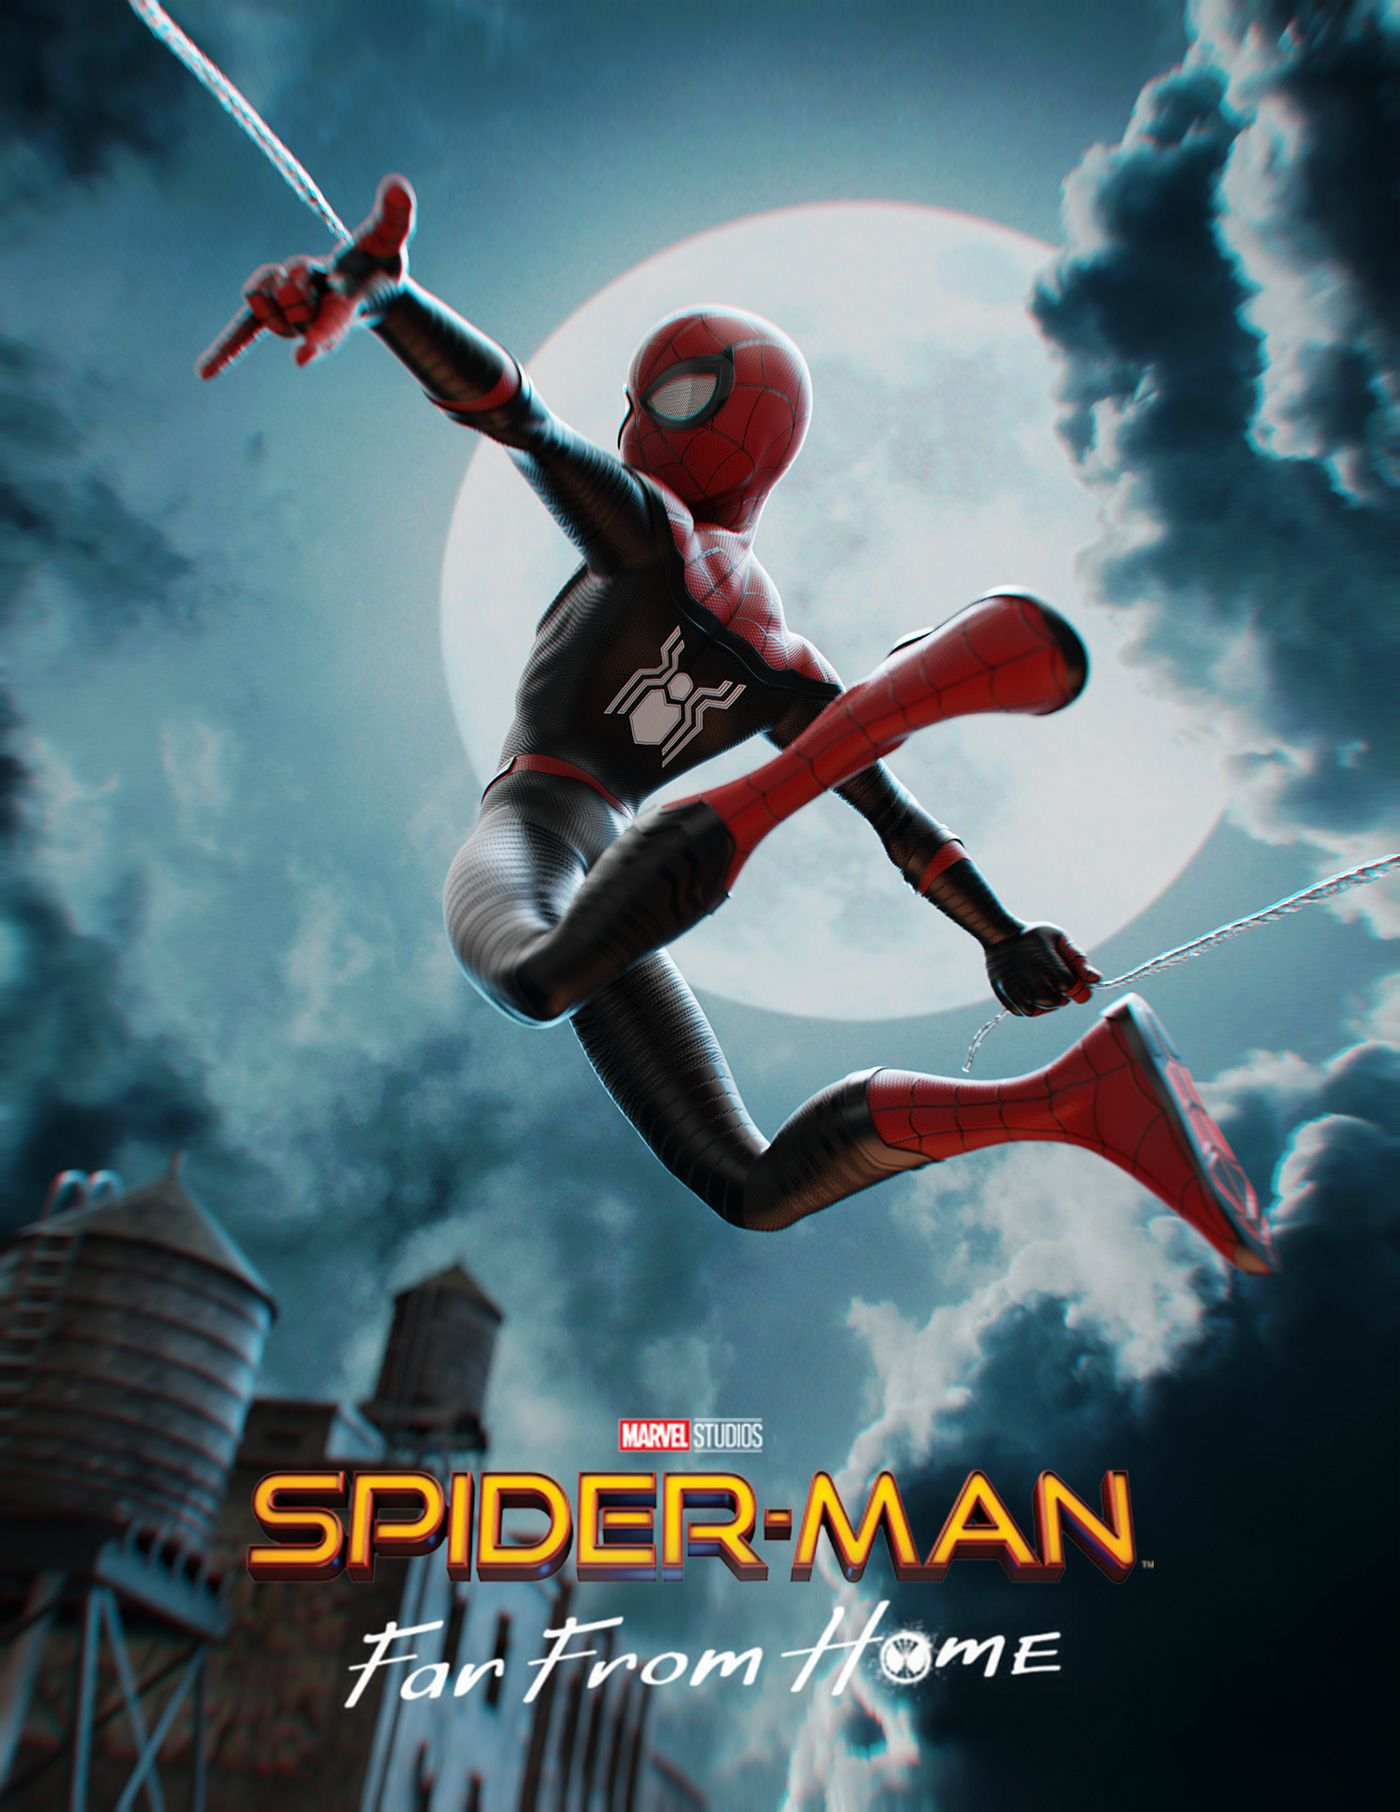 Far From Home Streaming : streaming, Spider-Man:, Home.2019^reGarDeR, Complet, [Streaminggratuit], Spiderman,, Spiderman, Comic,, Marvel